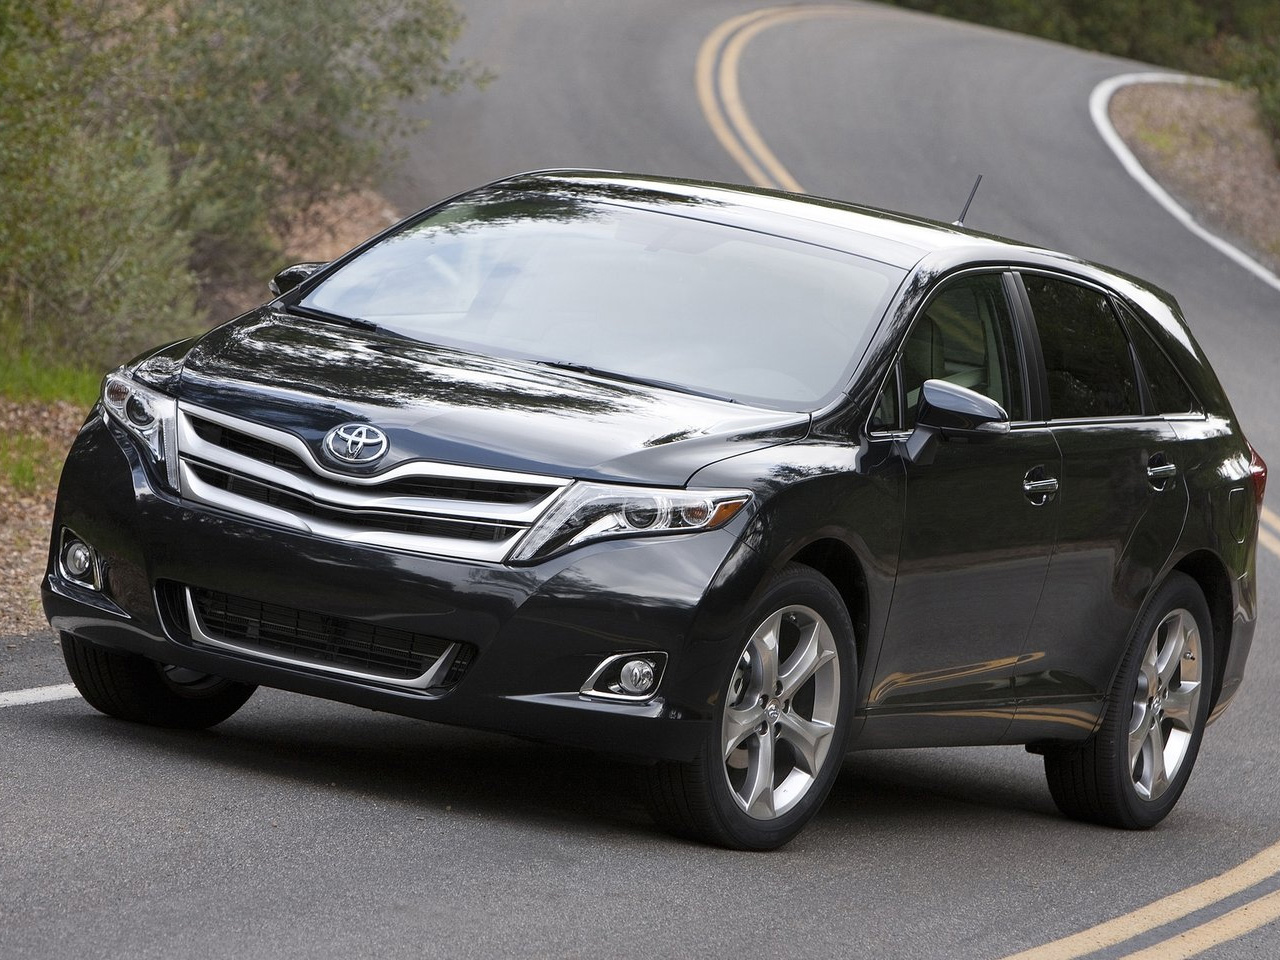 new car releases 2013New Style 2013 Toyota Venza Release NEW CARUSED CAR REVIEWS PICTURE